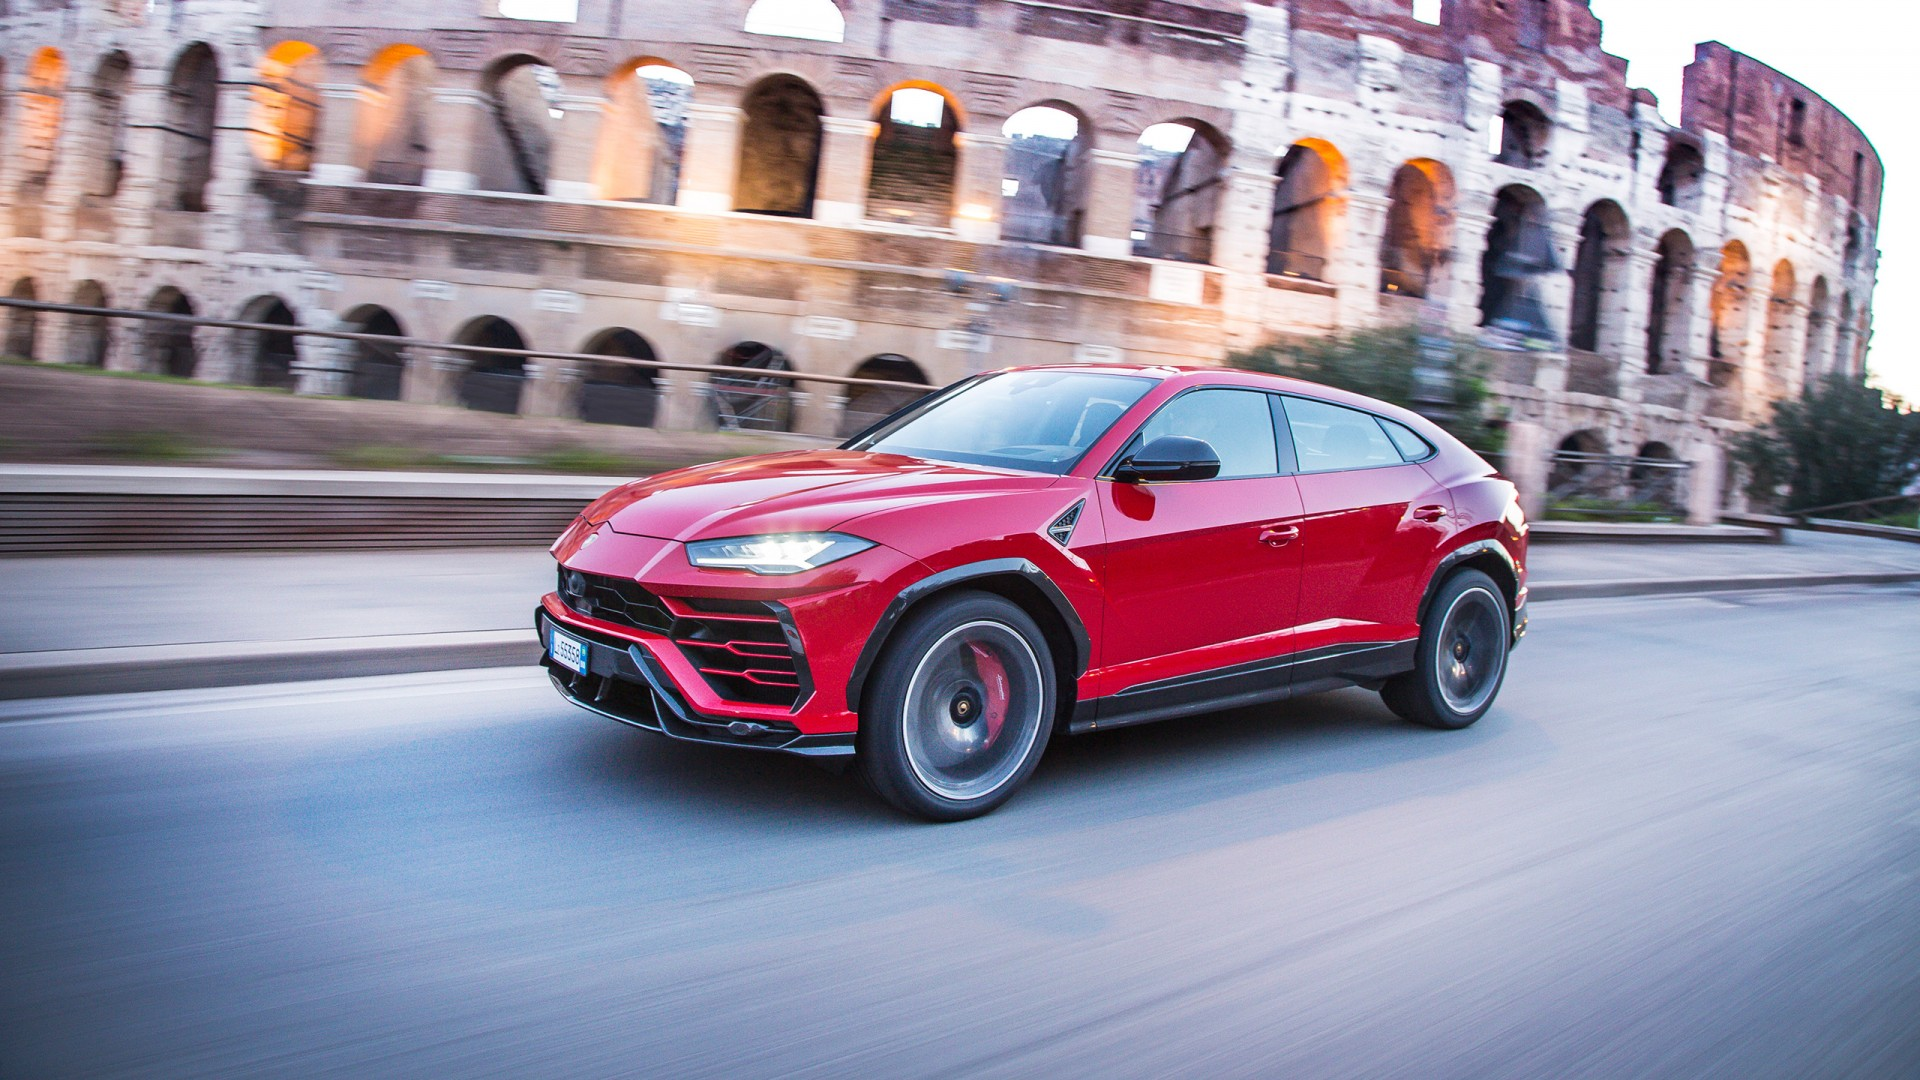 Lamborghini Urus 2018 Wallpaper  HD Car Wallpapers  ID 10172